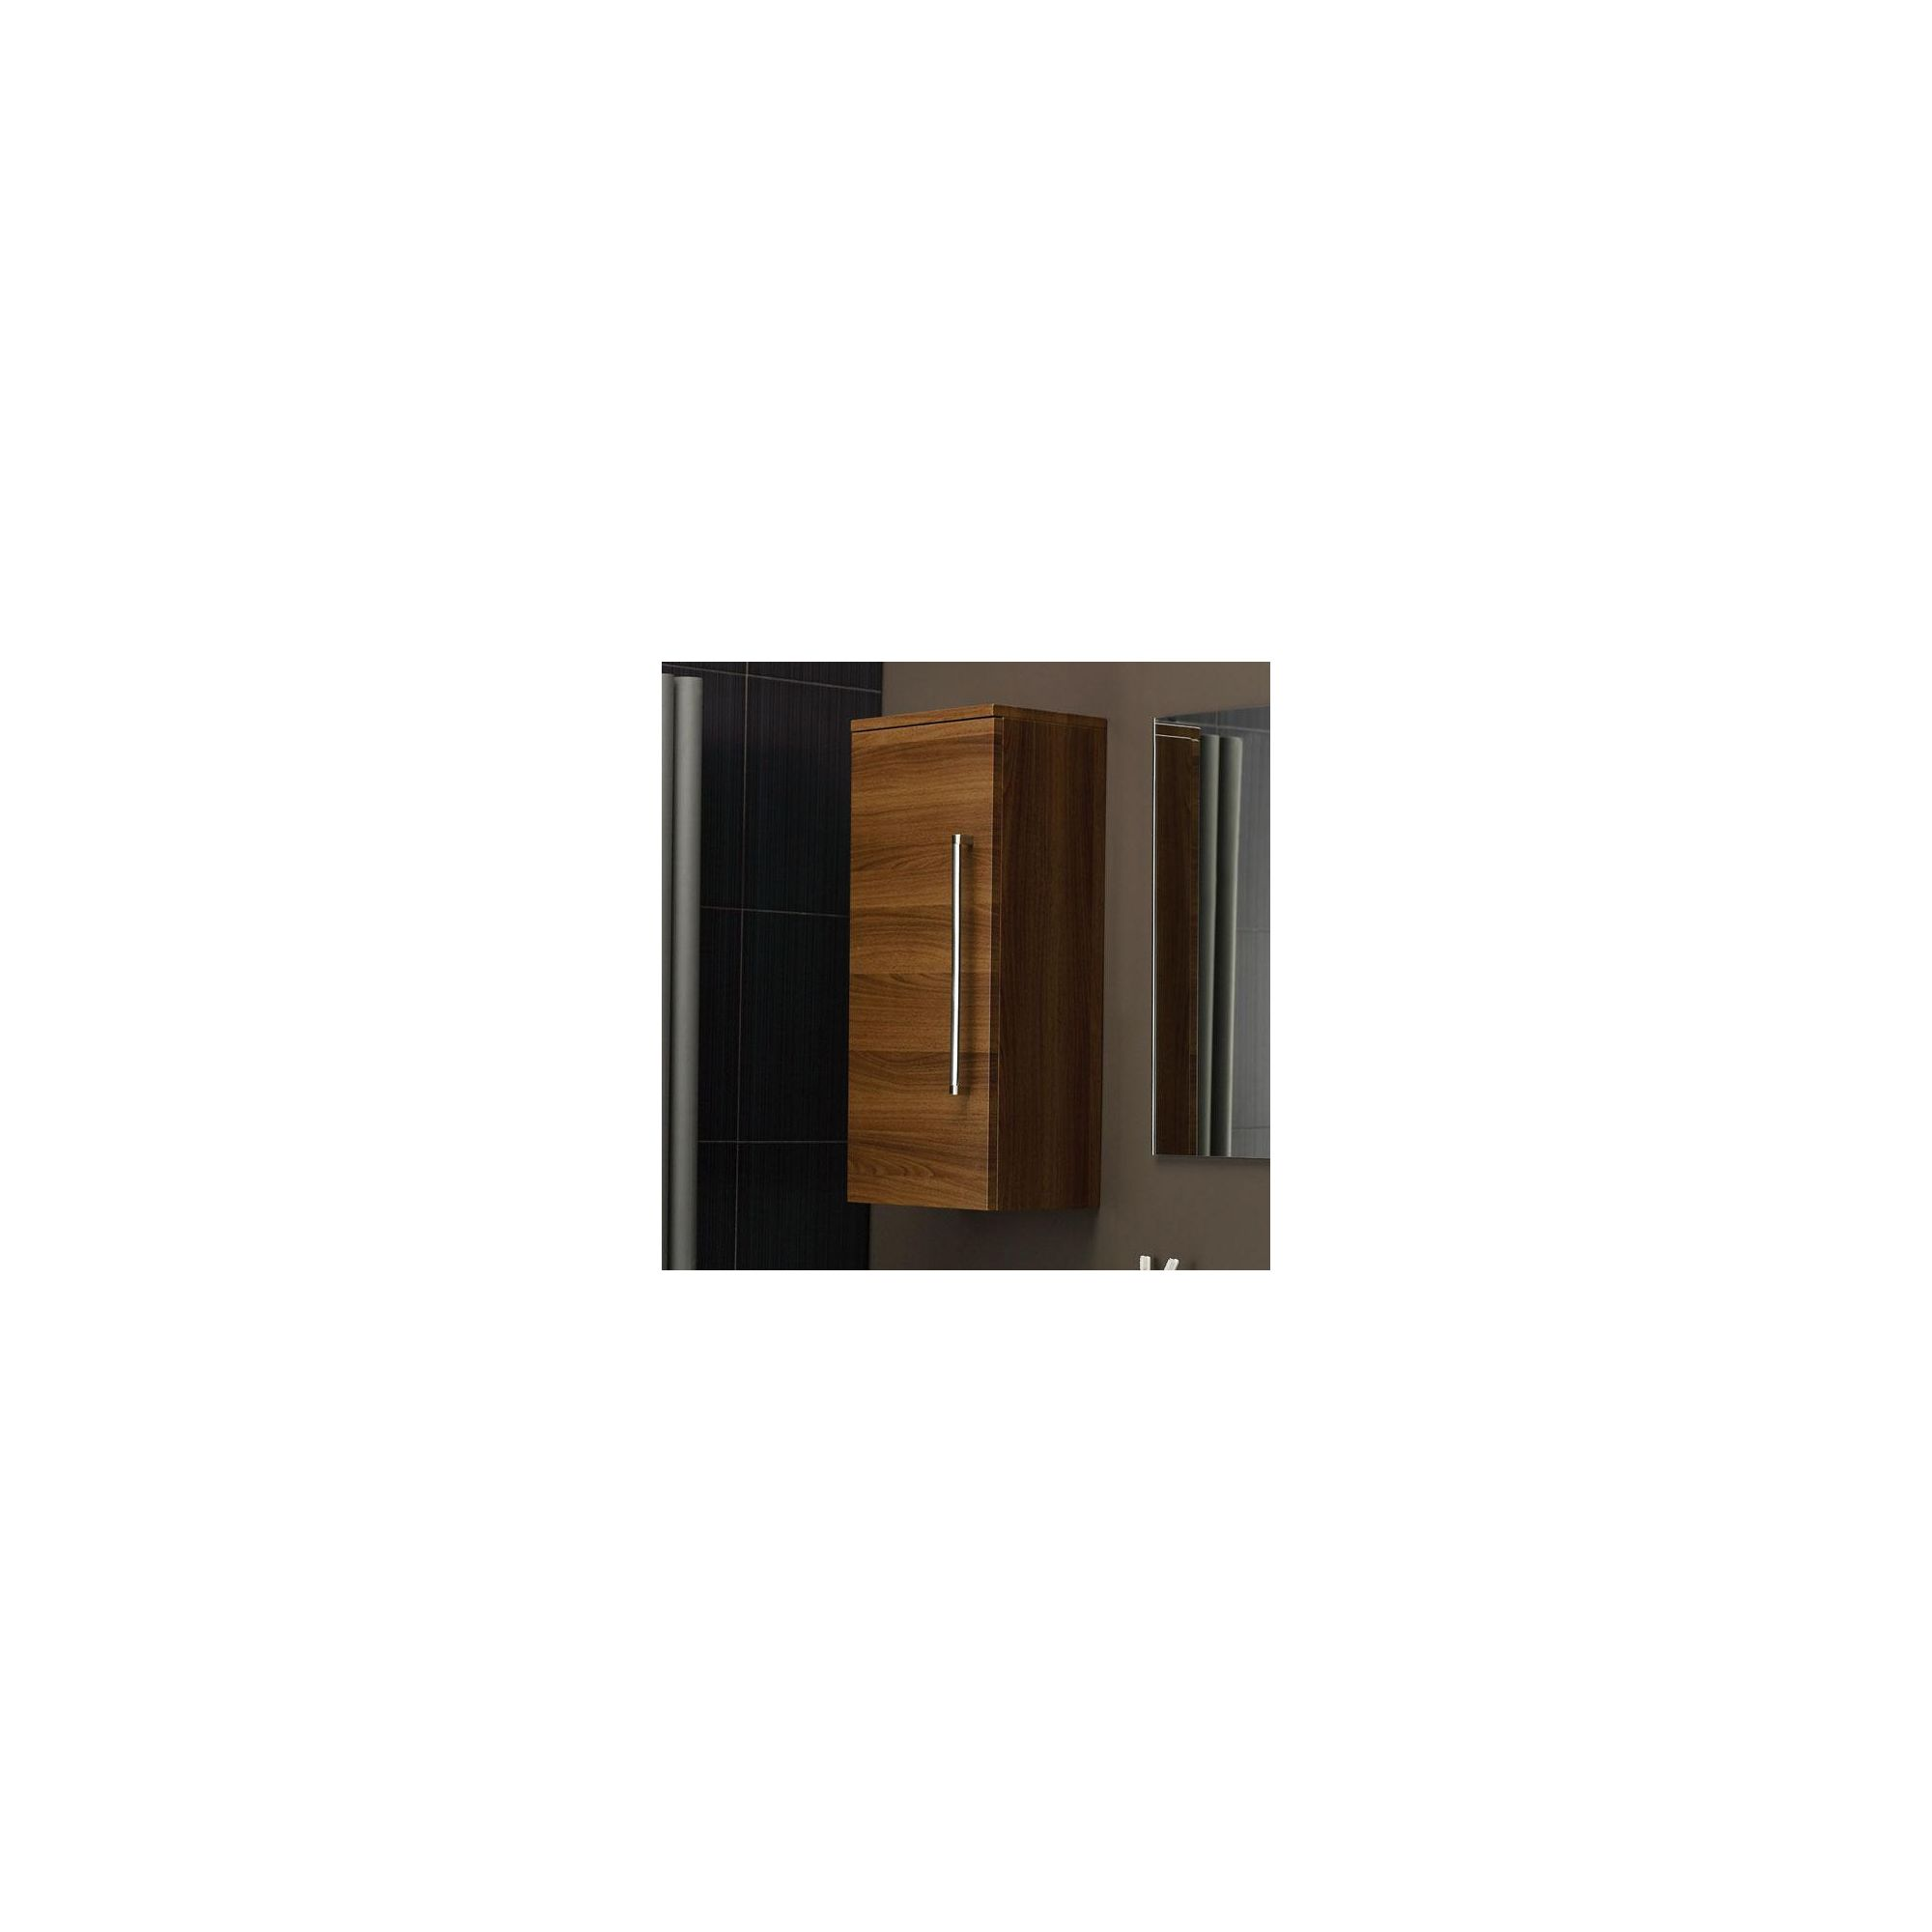 tesco hudson reed grove bathroom side cabinet 800mm high x